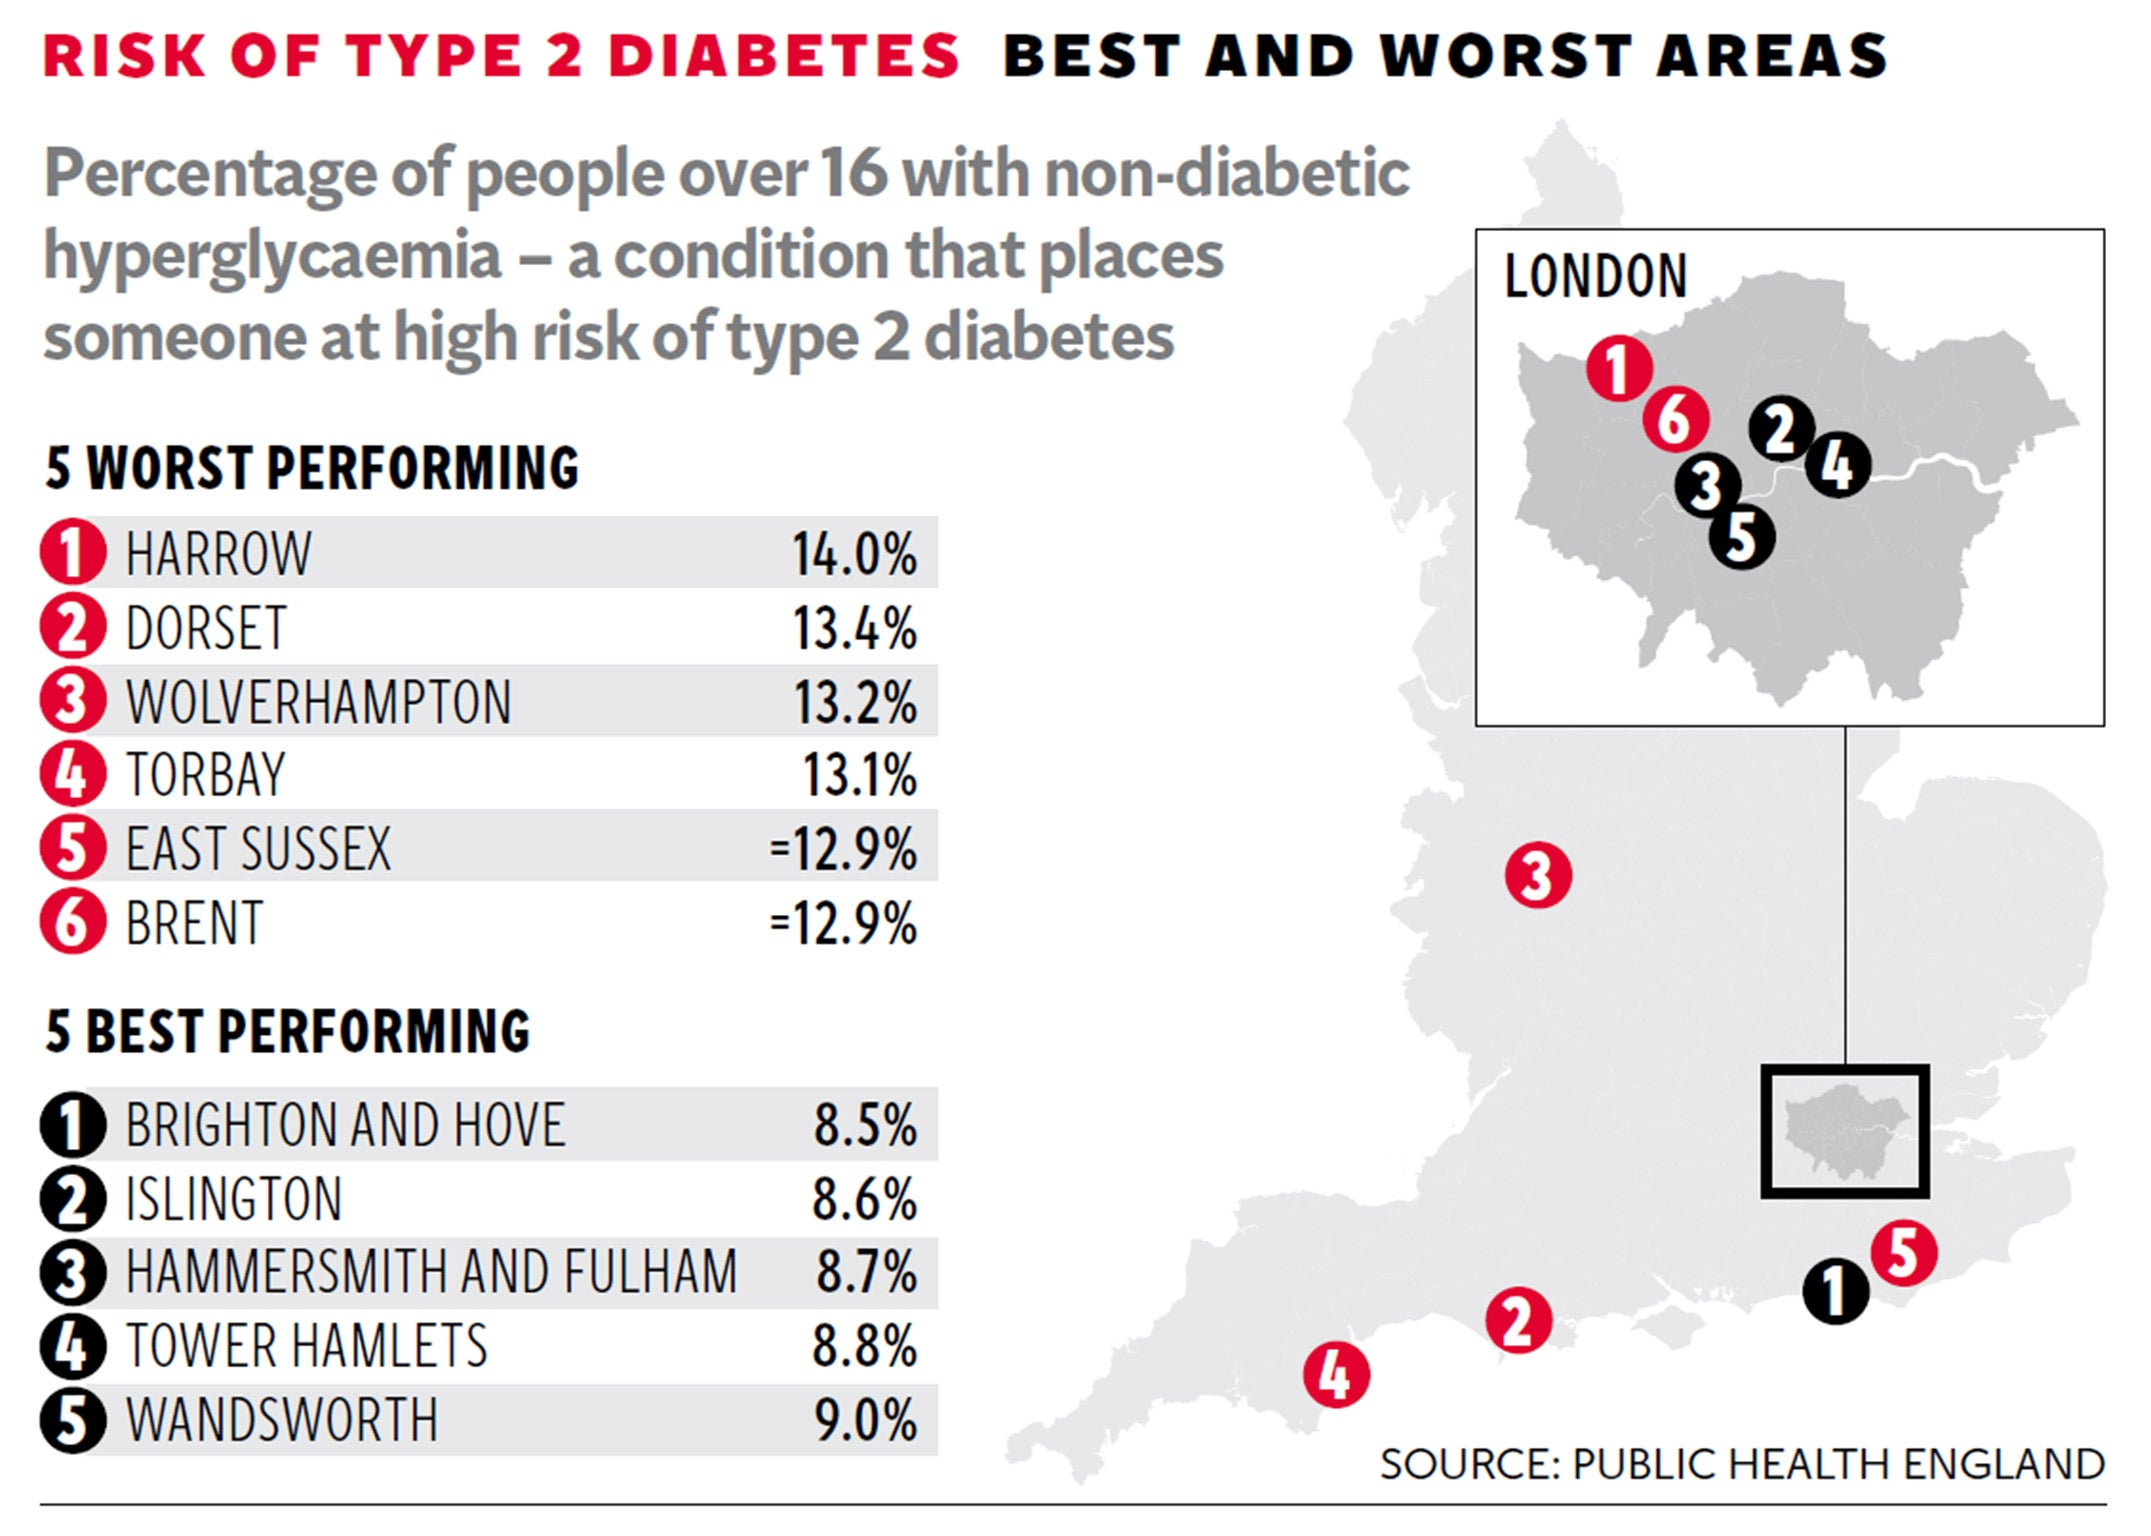 Watch Risk of Type 2 Diabetes High for Smokers, Decreases With Quitting video